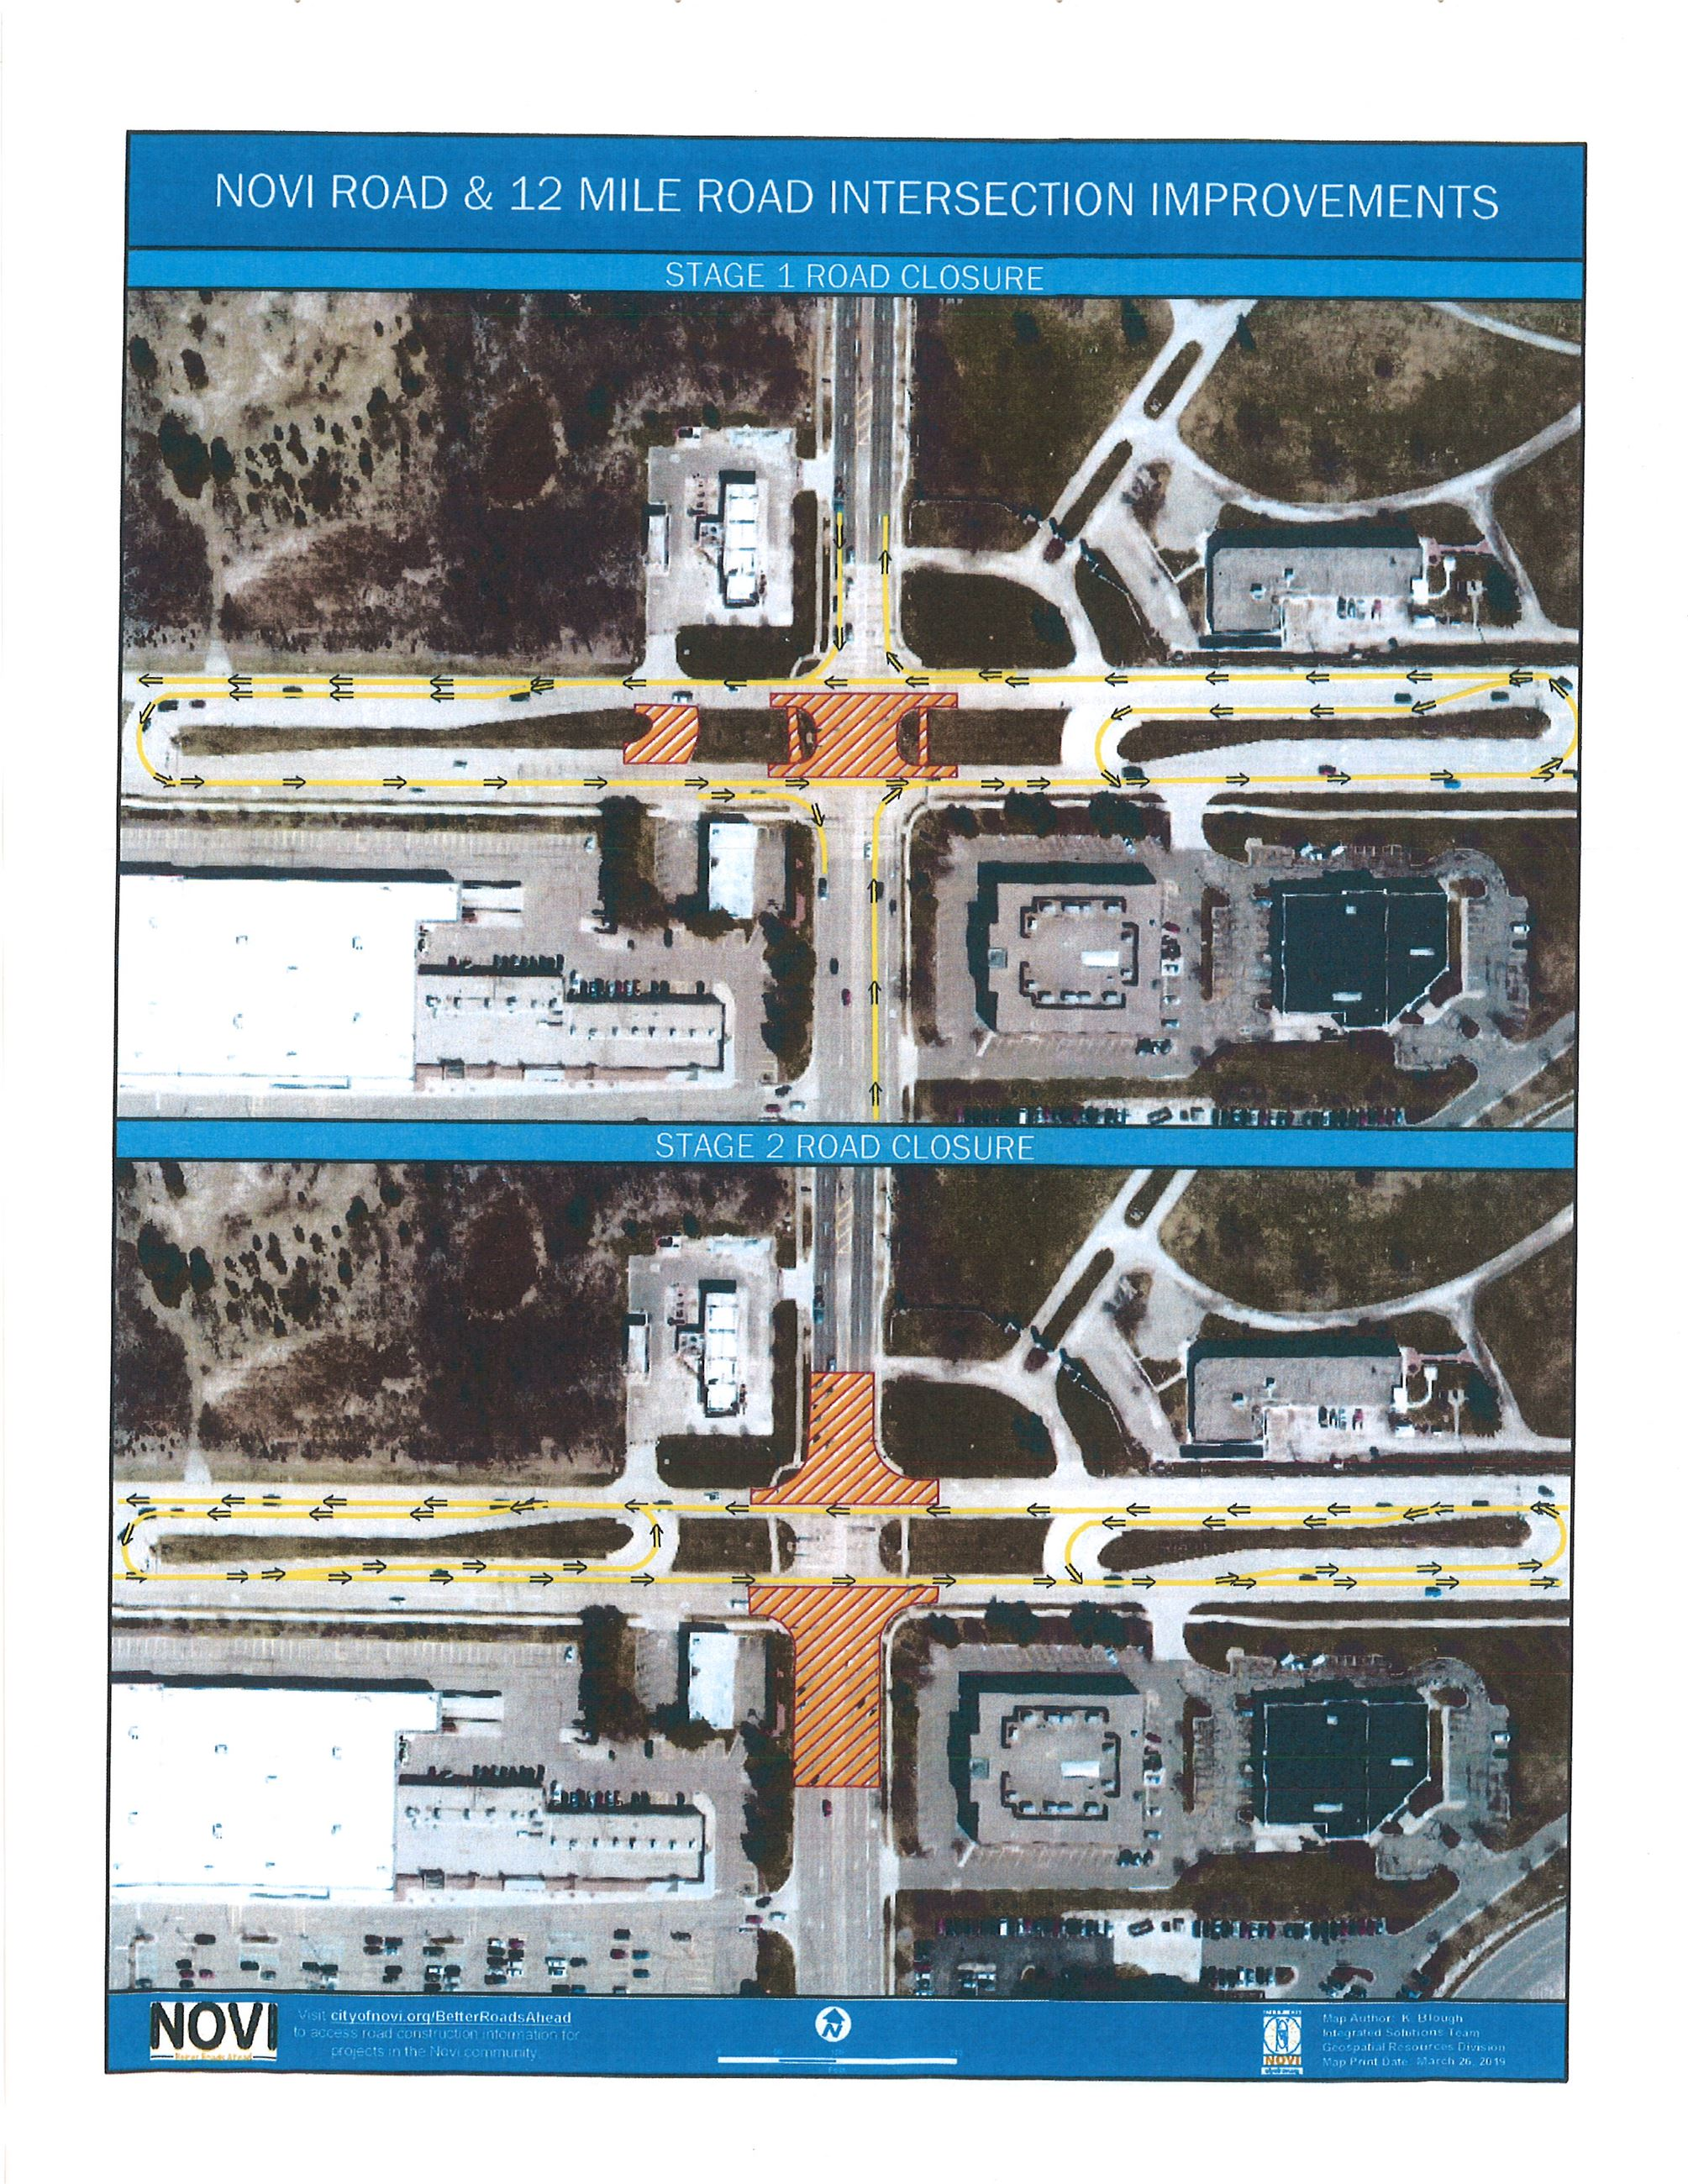 Novi/12 Mile Road construction staging map (provided by the City of Novi)